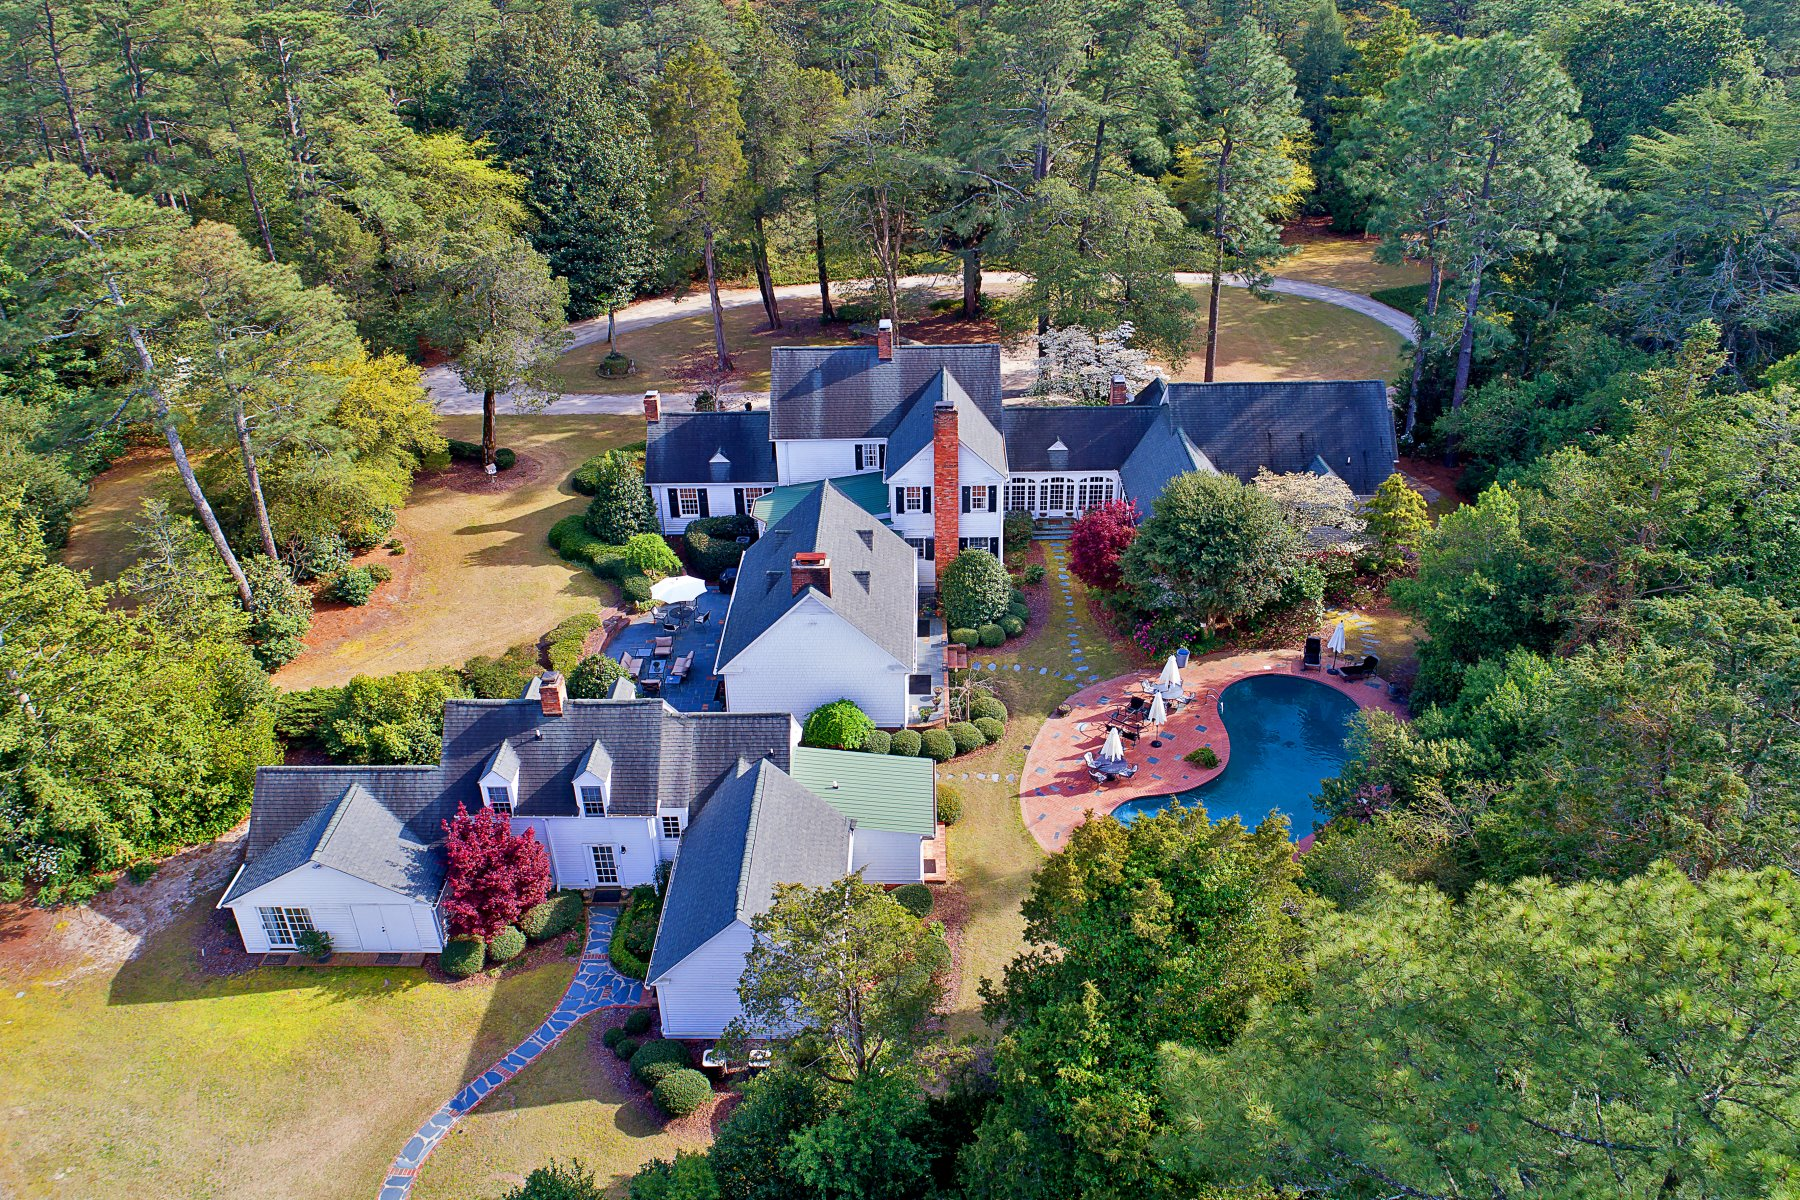 Single Family Homes for Active at Private Estate of the Forest Creek Golf Club founder 4072 Airport Road Pinehurst, North Carolina 28374 United States